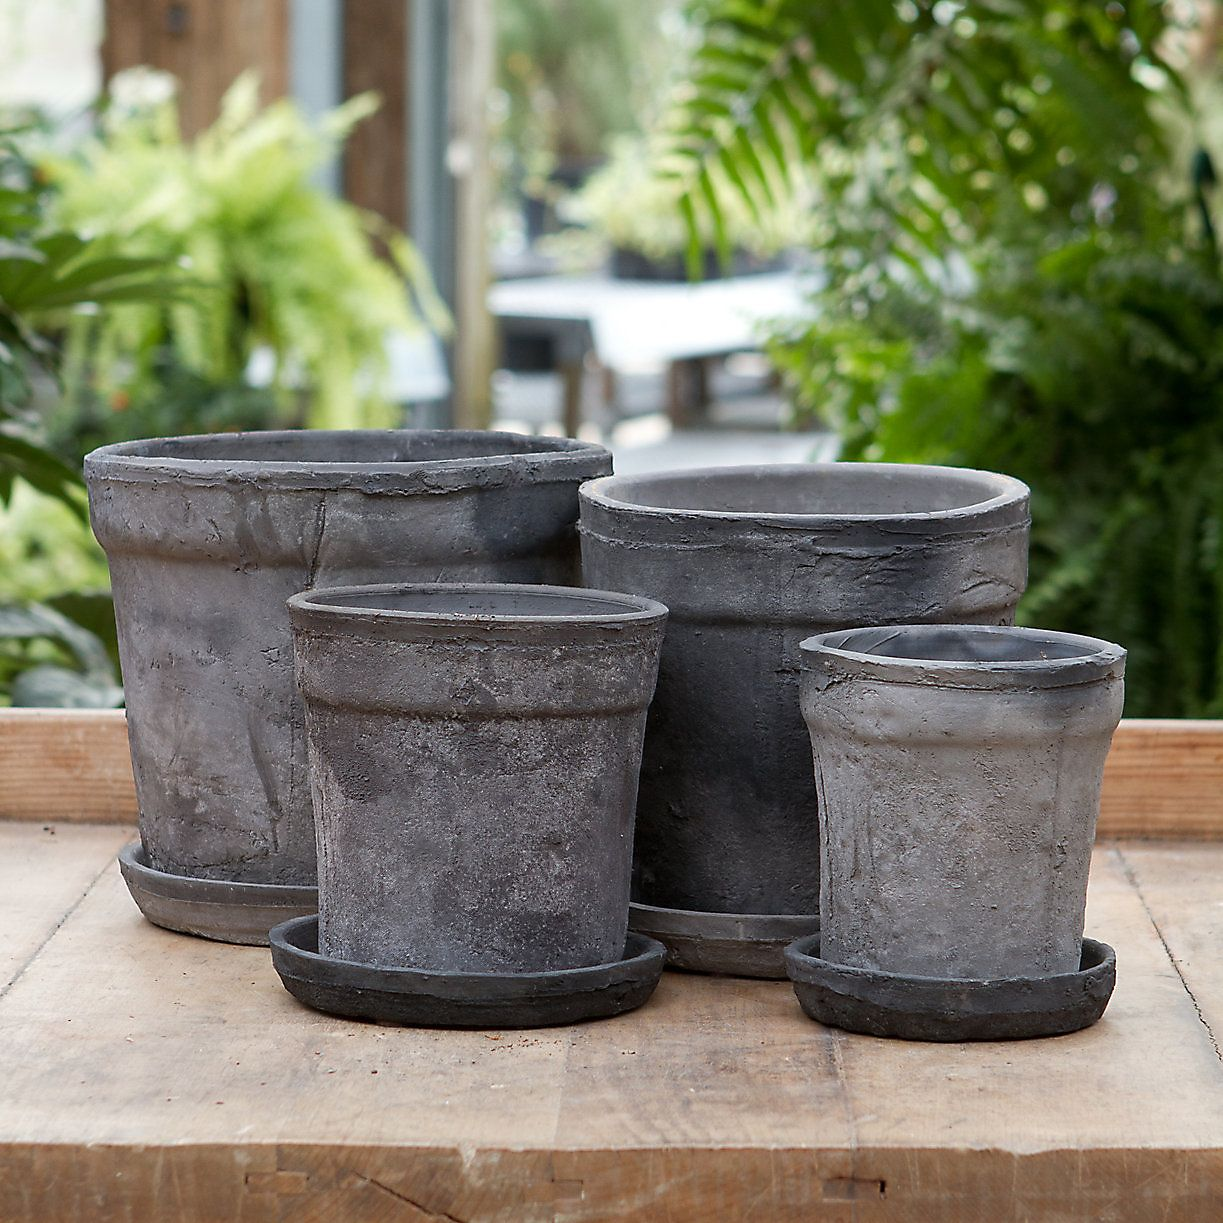 Earth fired clay wide rim pot saucer slate 4 10 in garden earth fired clay pots at terrain - Indoor plant pots with saucers ...